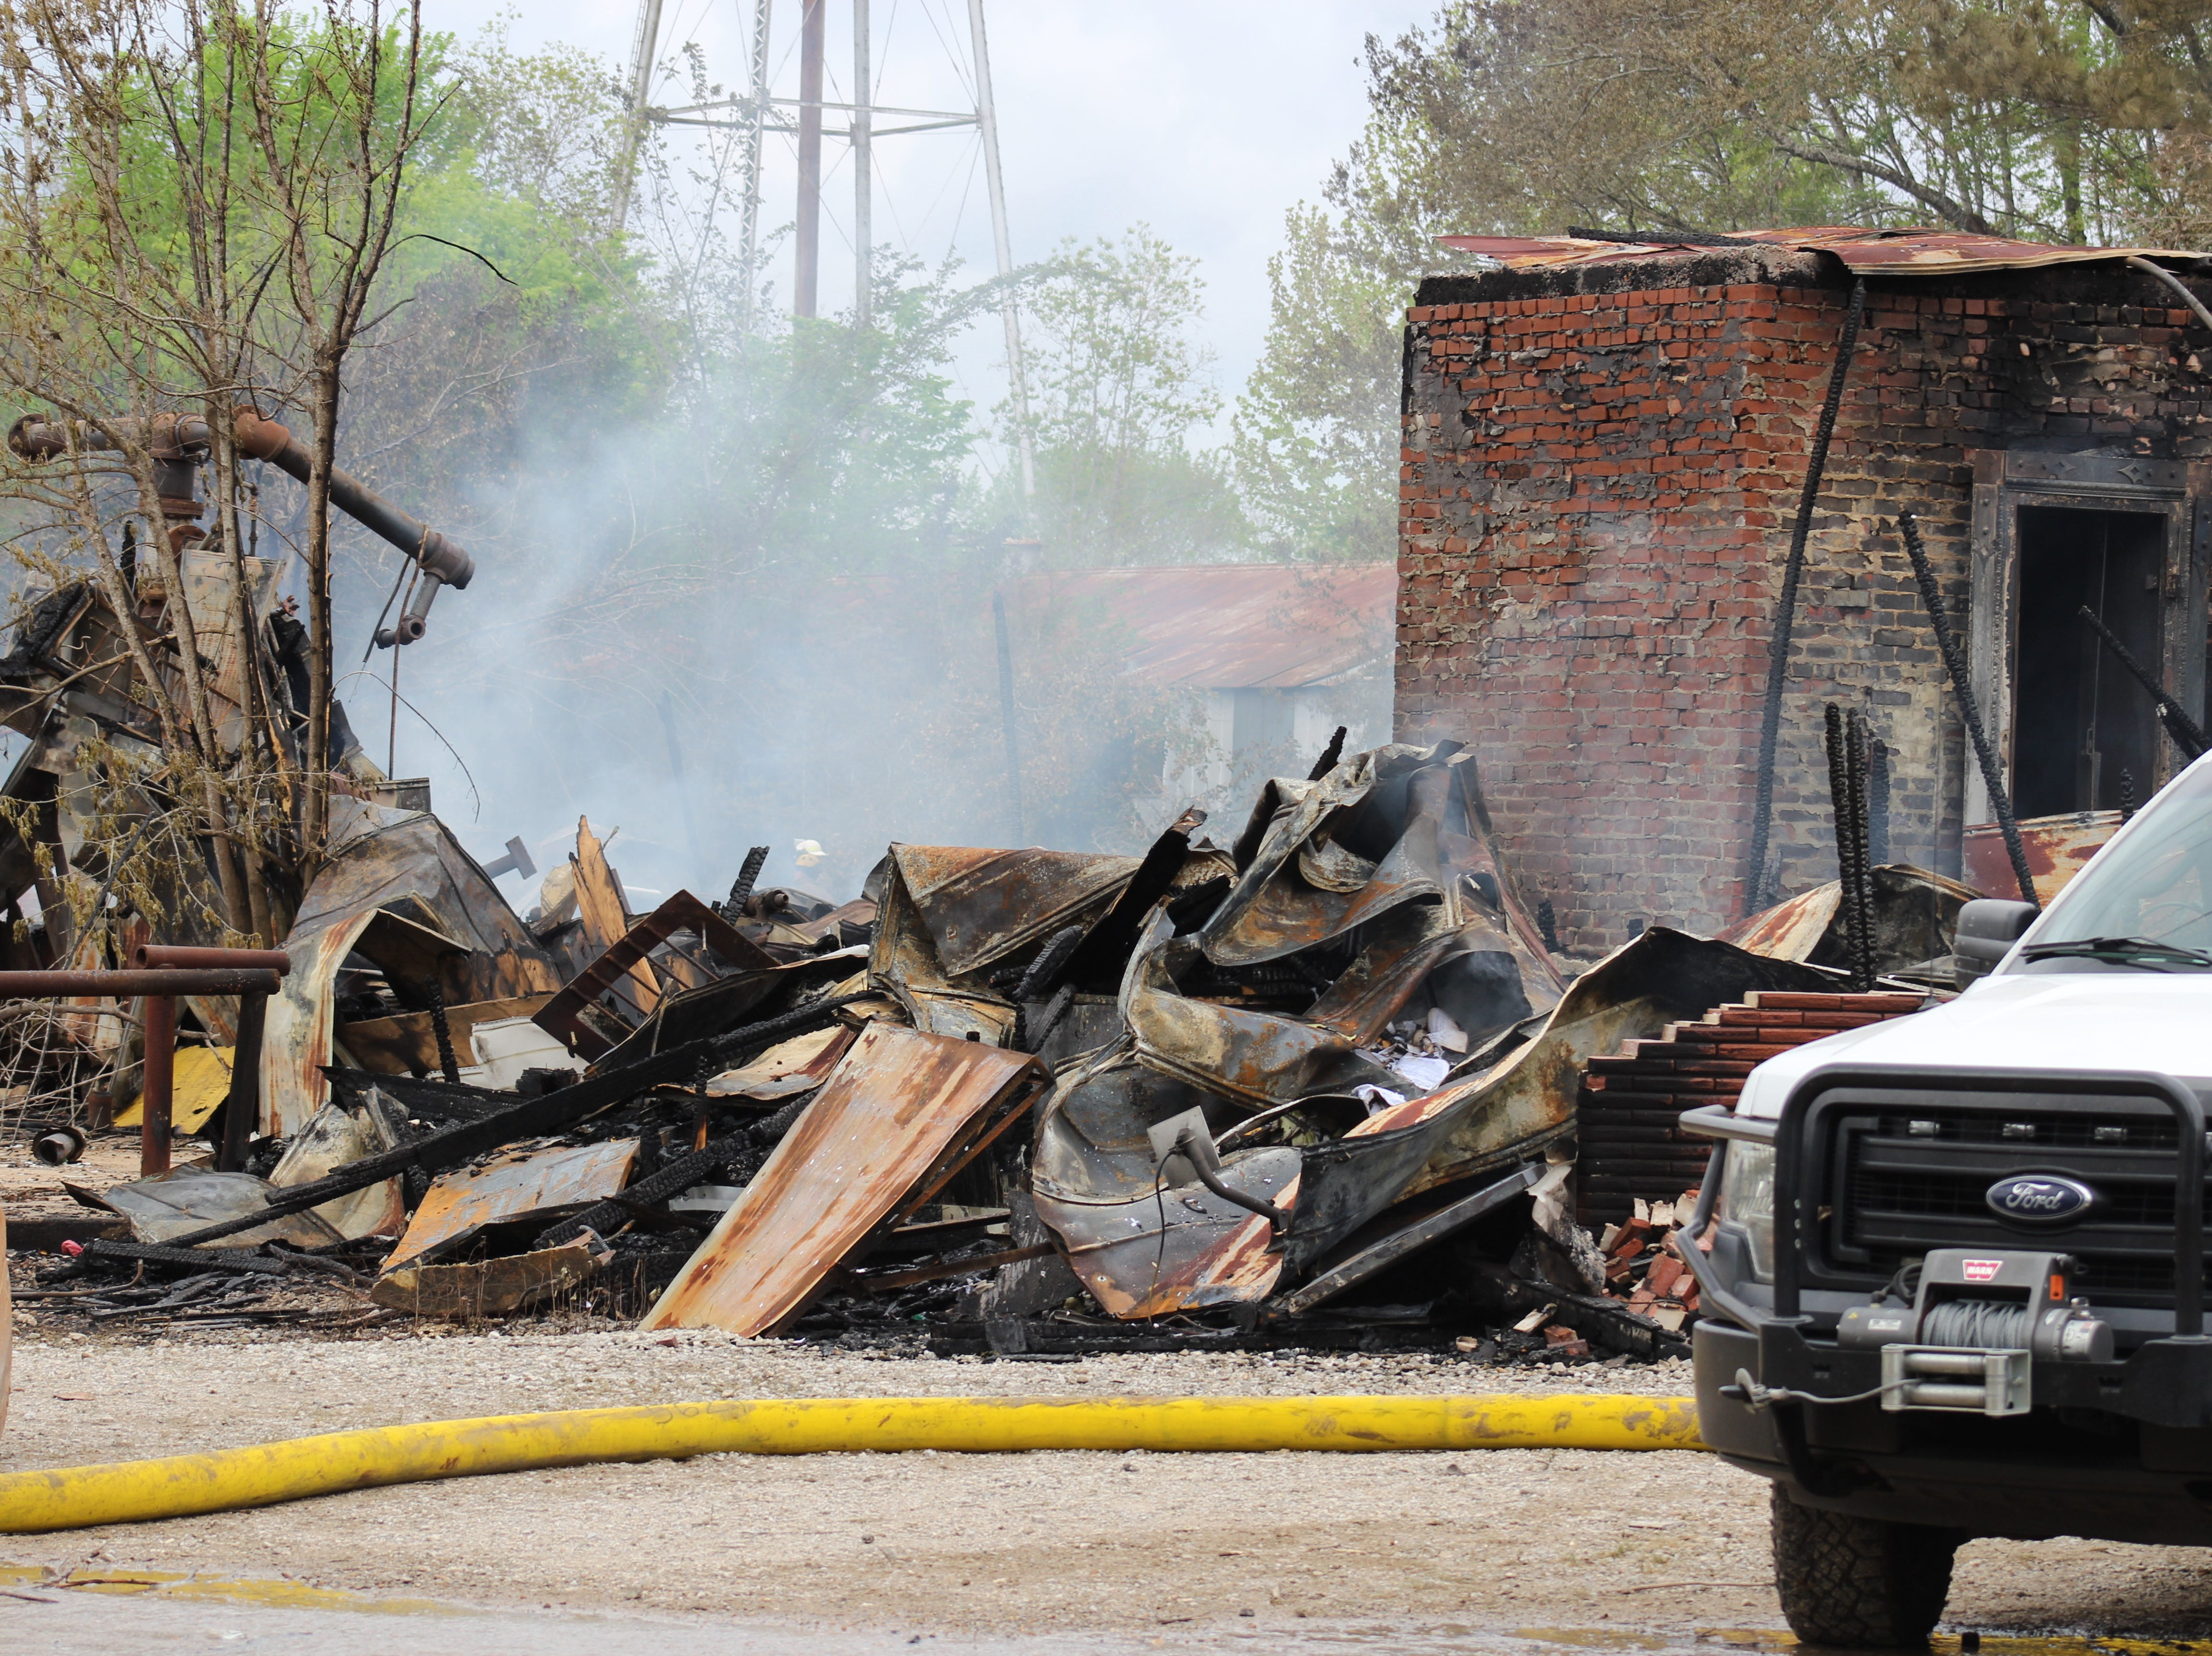 On Friday (March 29, 2019), Alexandria Fire Department and city of Alexandria crews remained at the site of the Alexandria Iron & Supply fire. The business at the corner of 5th and Arial streets was a total loss. An investigation is continuing.